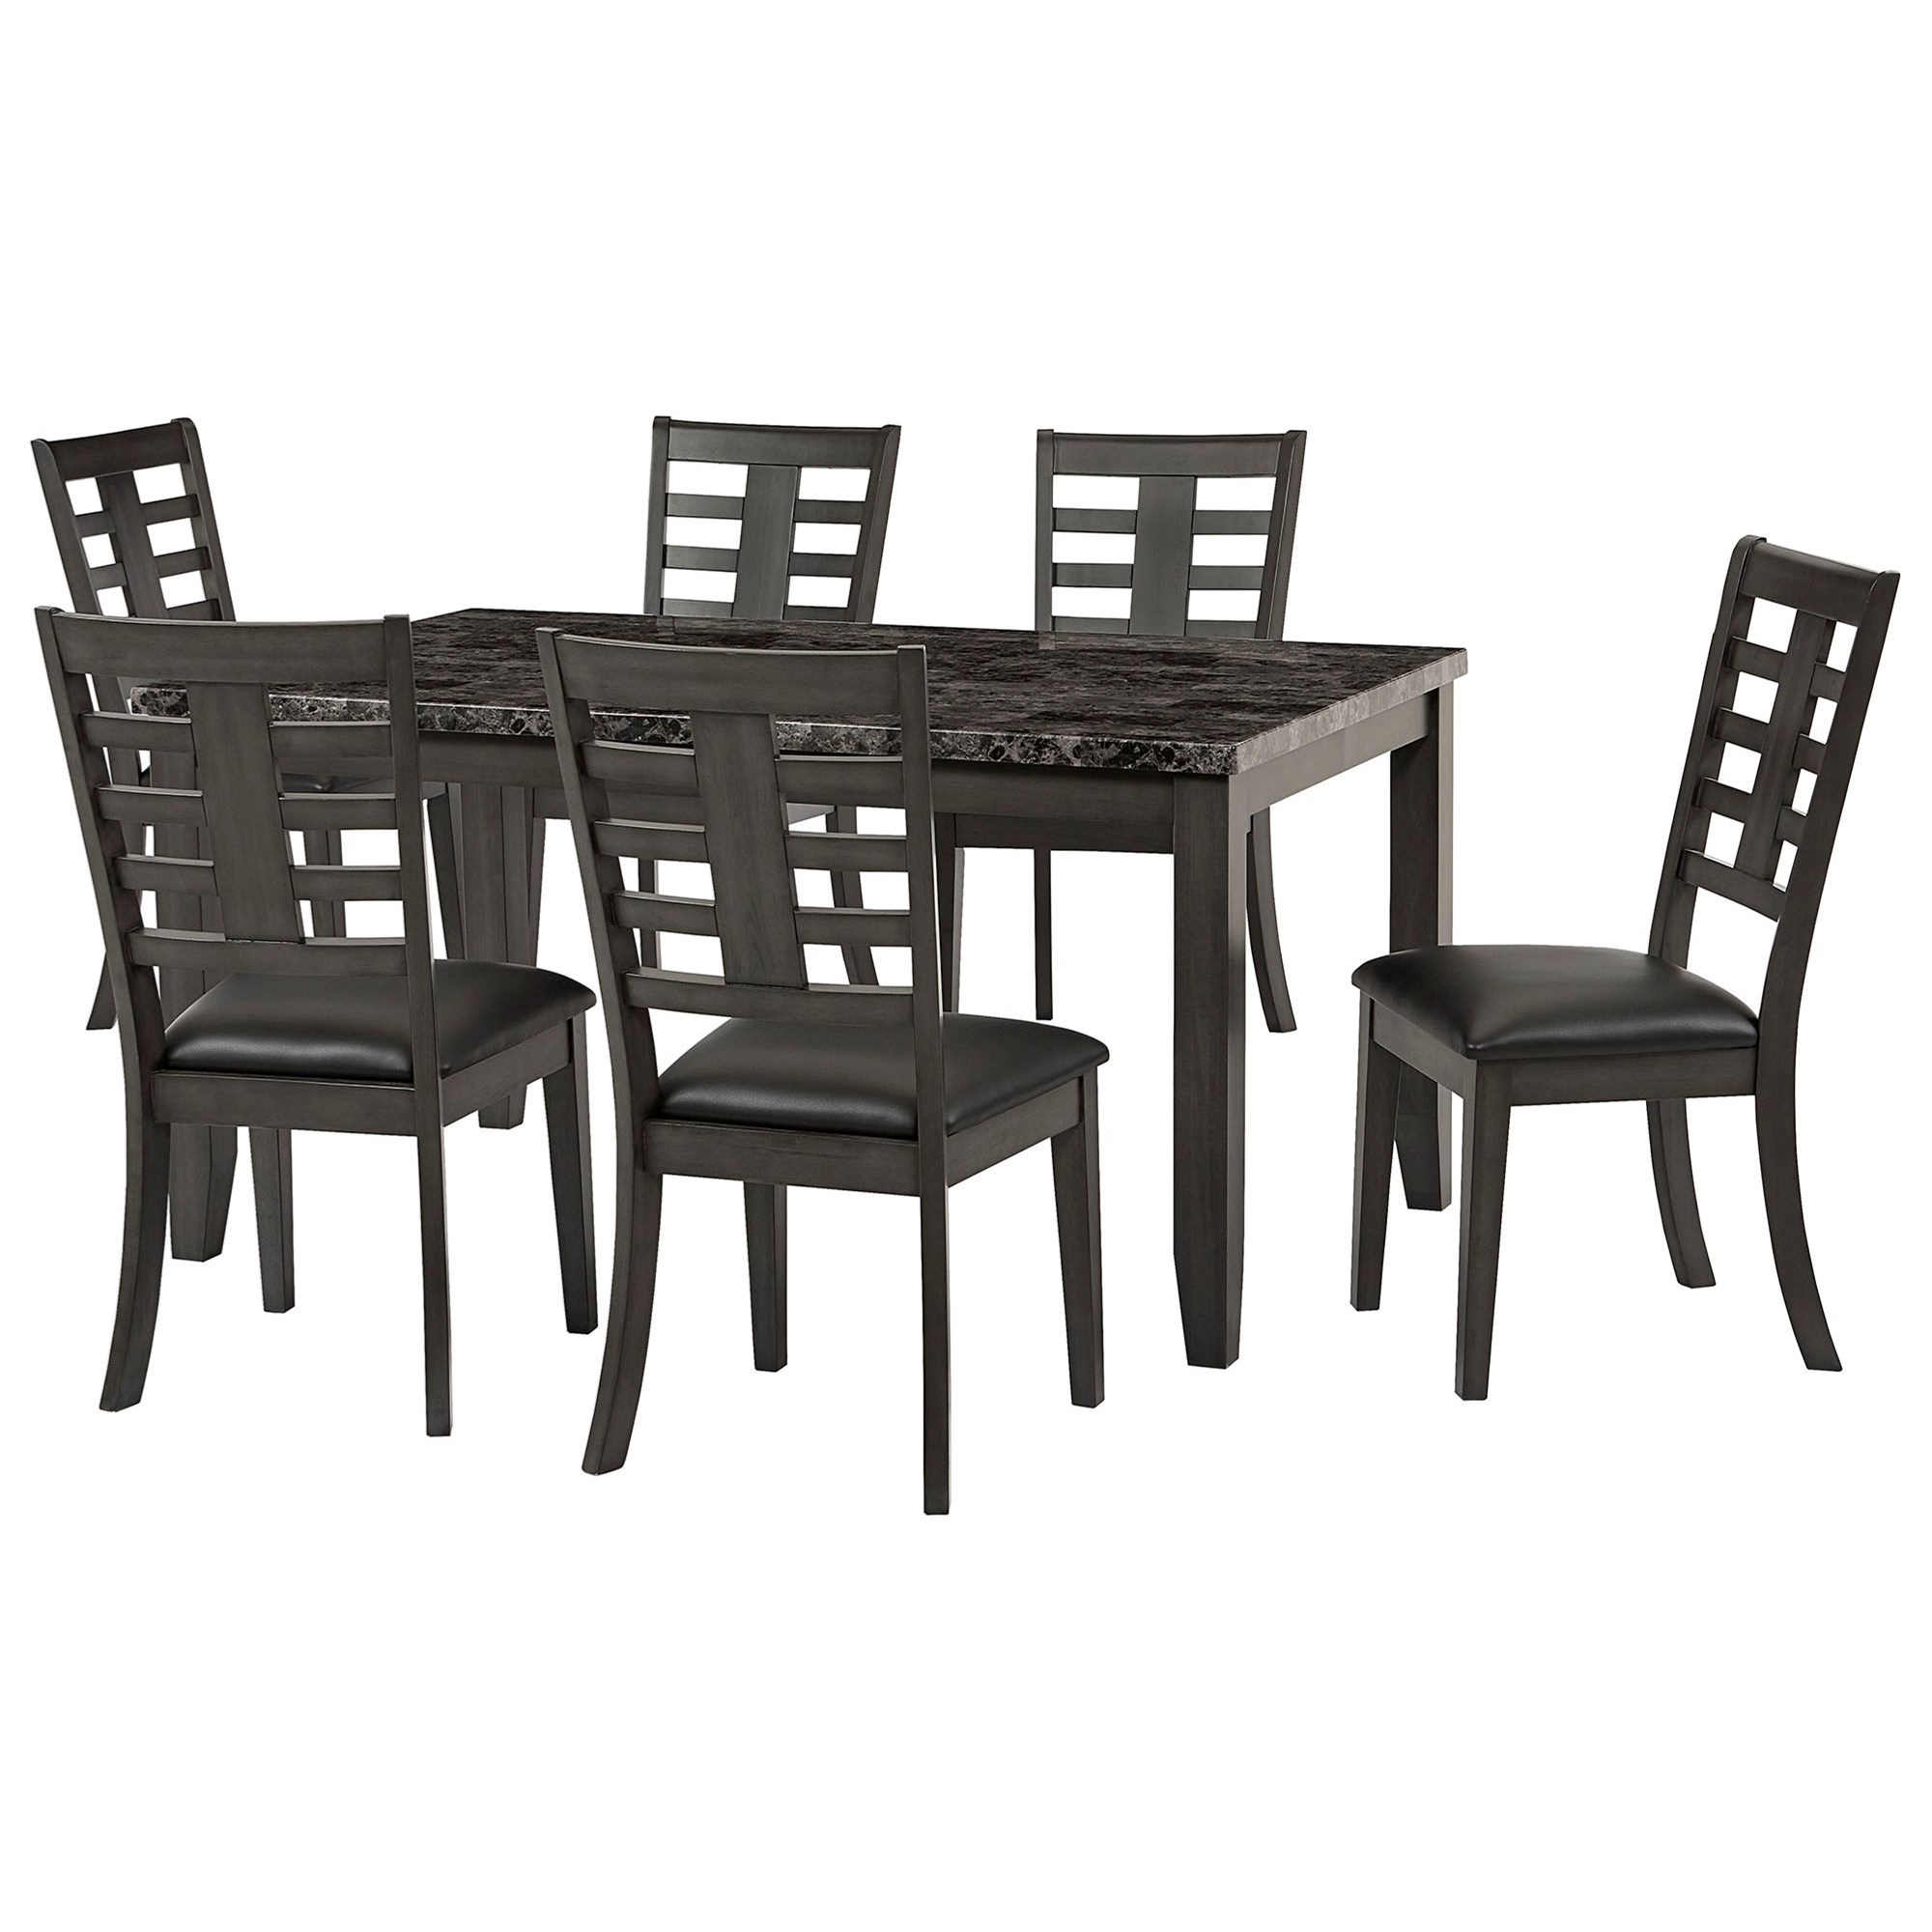 Faux Marble Finish Metal Contemporary Dining Tables With Well Known Standard Furniture Canaan Contemporary 7 Piece Dining Set (View 29 of 30)